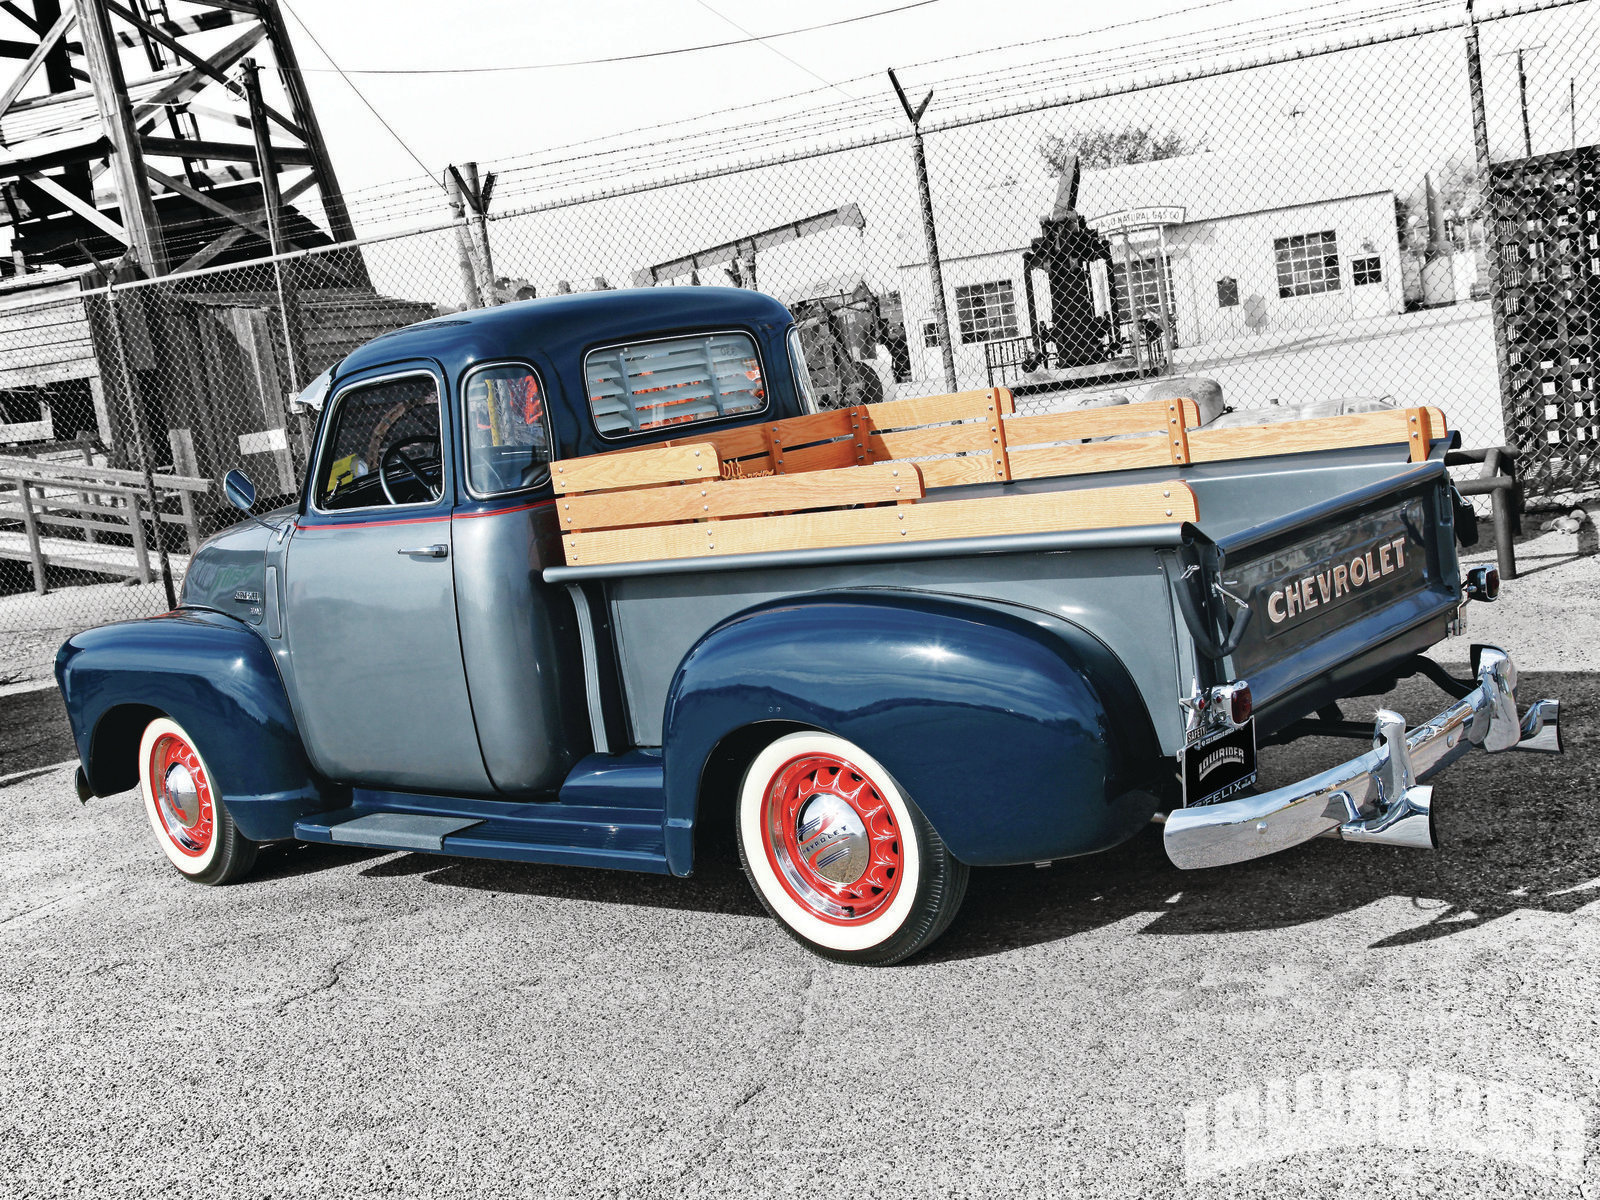 1949 Chevrolet 3100 Truck Rear Left View Lowrider Chevy Vin Number